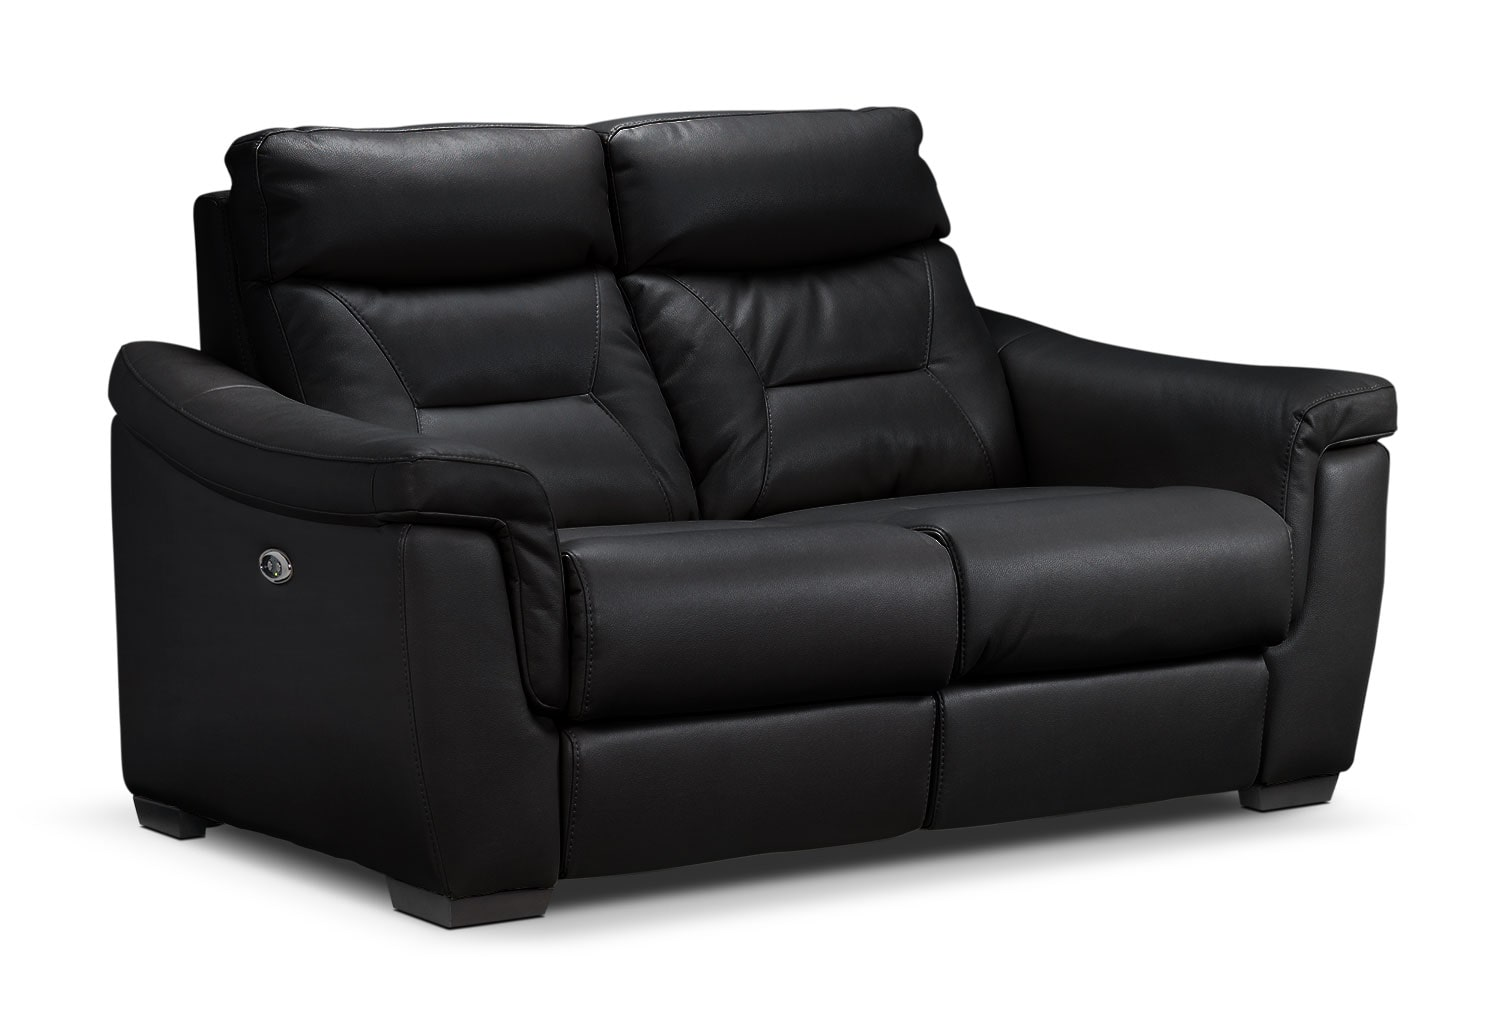 Ralston Power Reclining Loveseat - Black